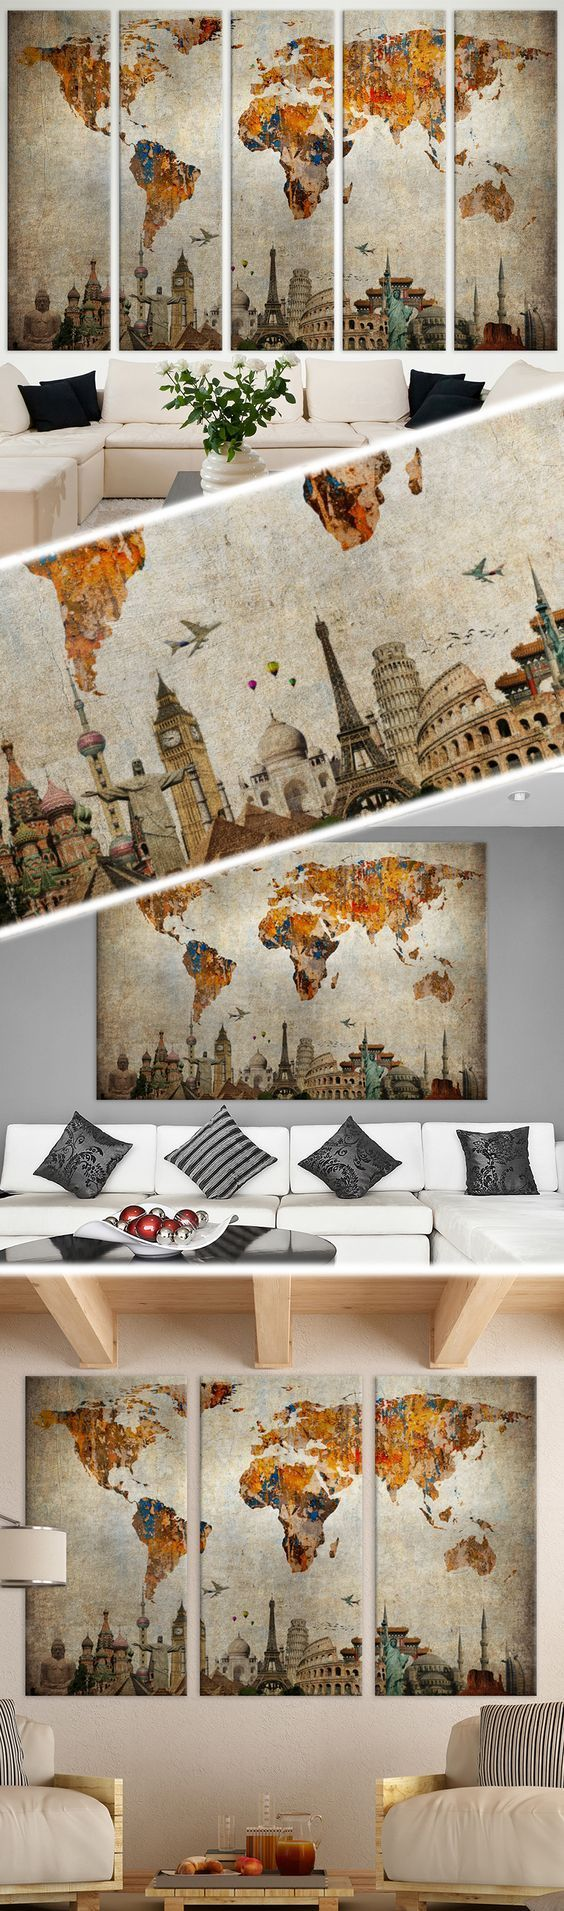 Creative world map canvas prints wall art for large home or office creative world map canvas prints wall art for large home or office wall decoration sale gumiabroncs Gallery